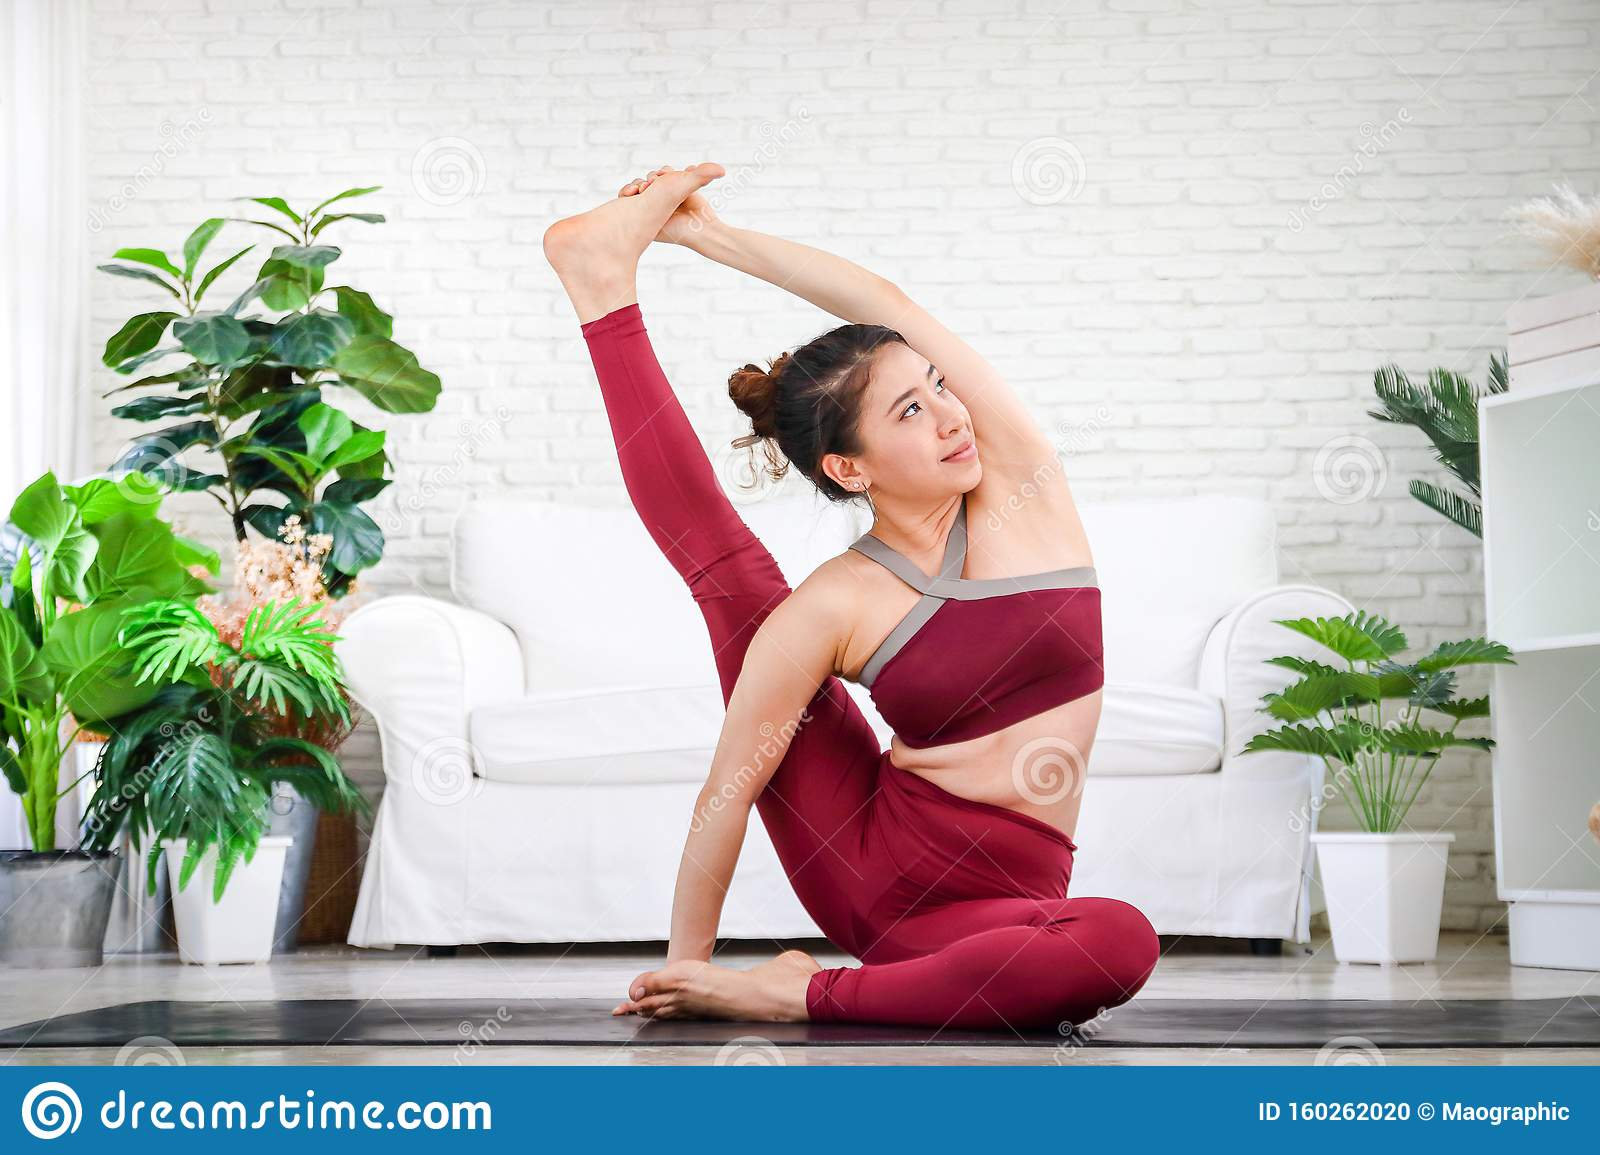 Asian Women Exercise And Do Yoga Pose At Home. Stock Photo ...